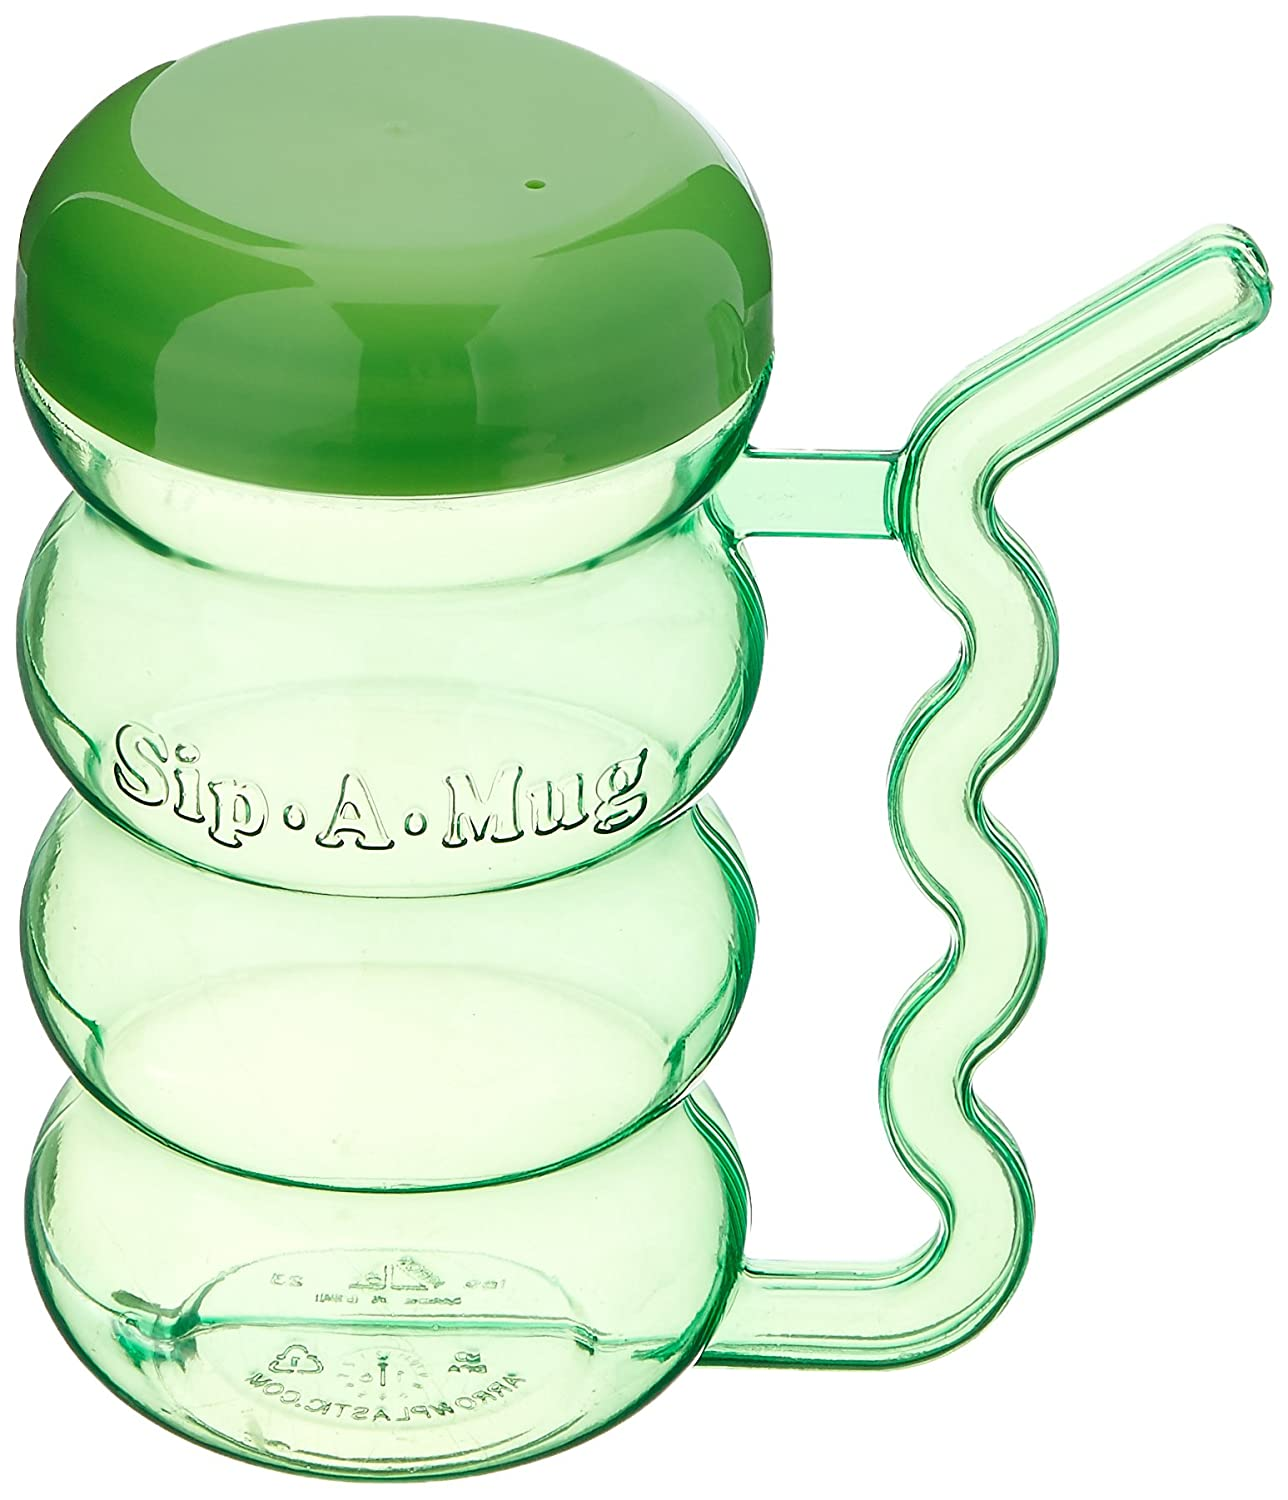 Sammons Preston Small Cup with Built-in Straw, 13 oz. Sippy Cup with Secure Lid and Handle for Spill Prevention, Spillproof Mug with Fun Straw for Kids, Elderly, Disabled, and Handicapped